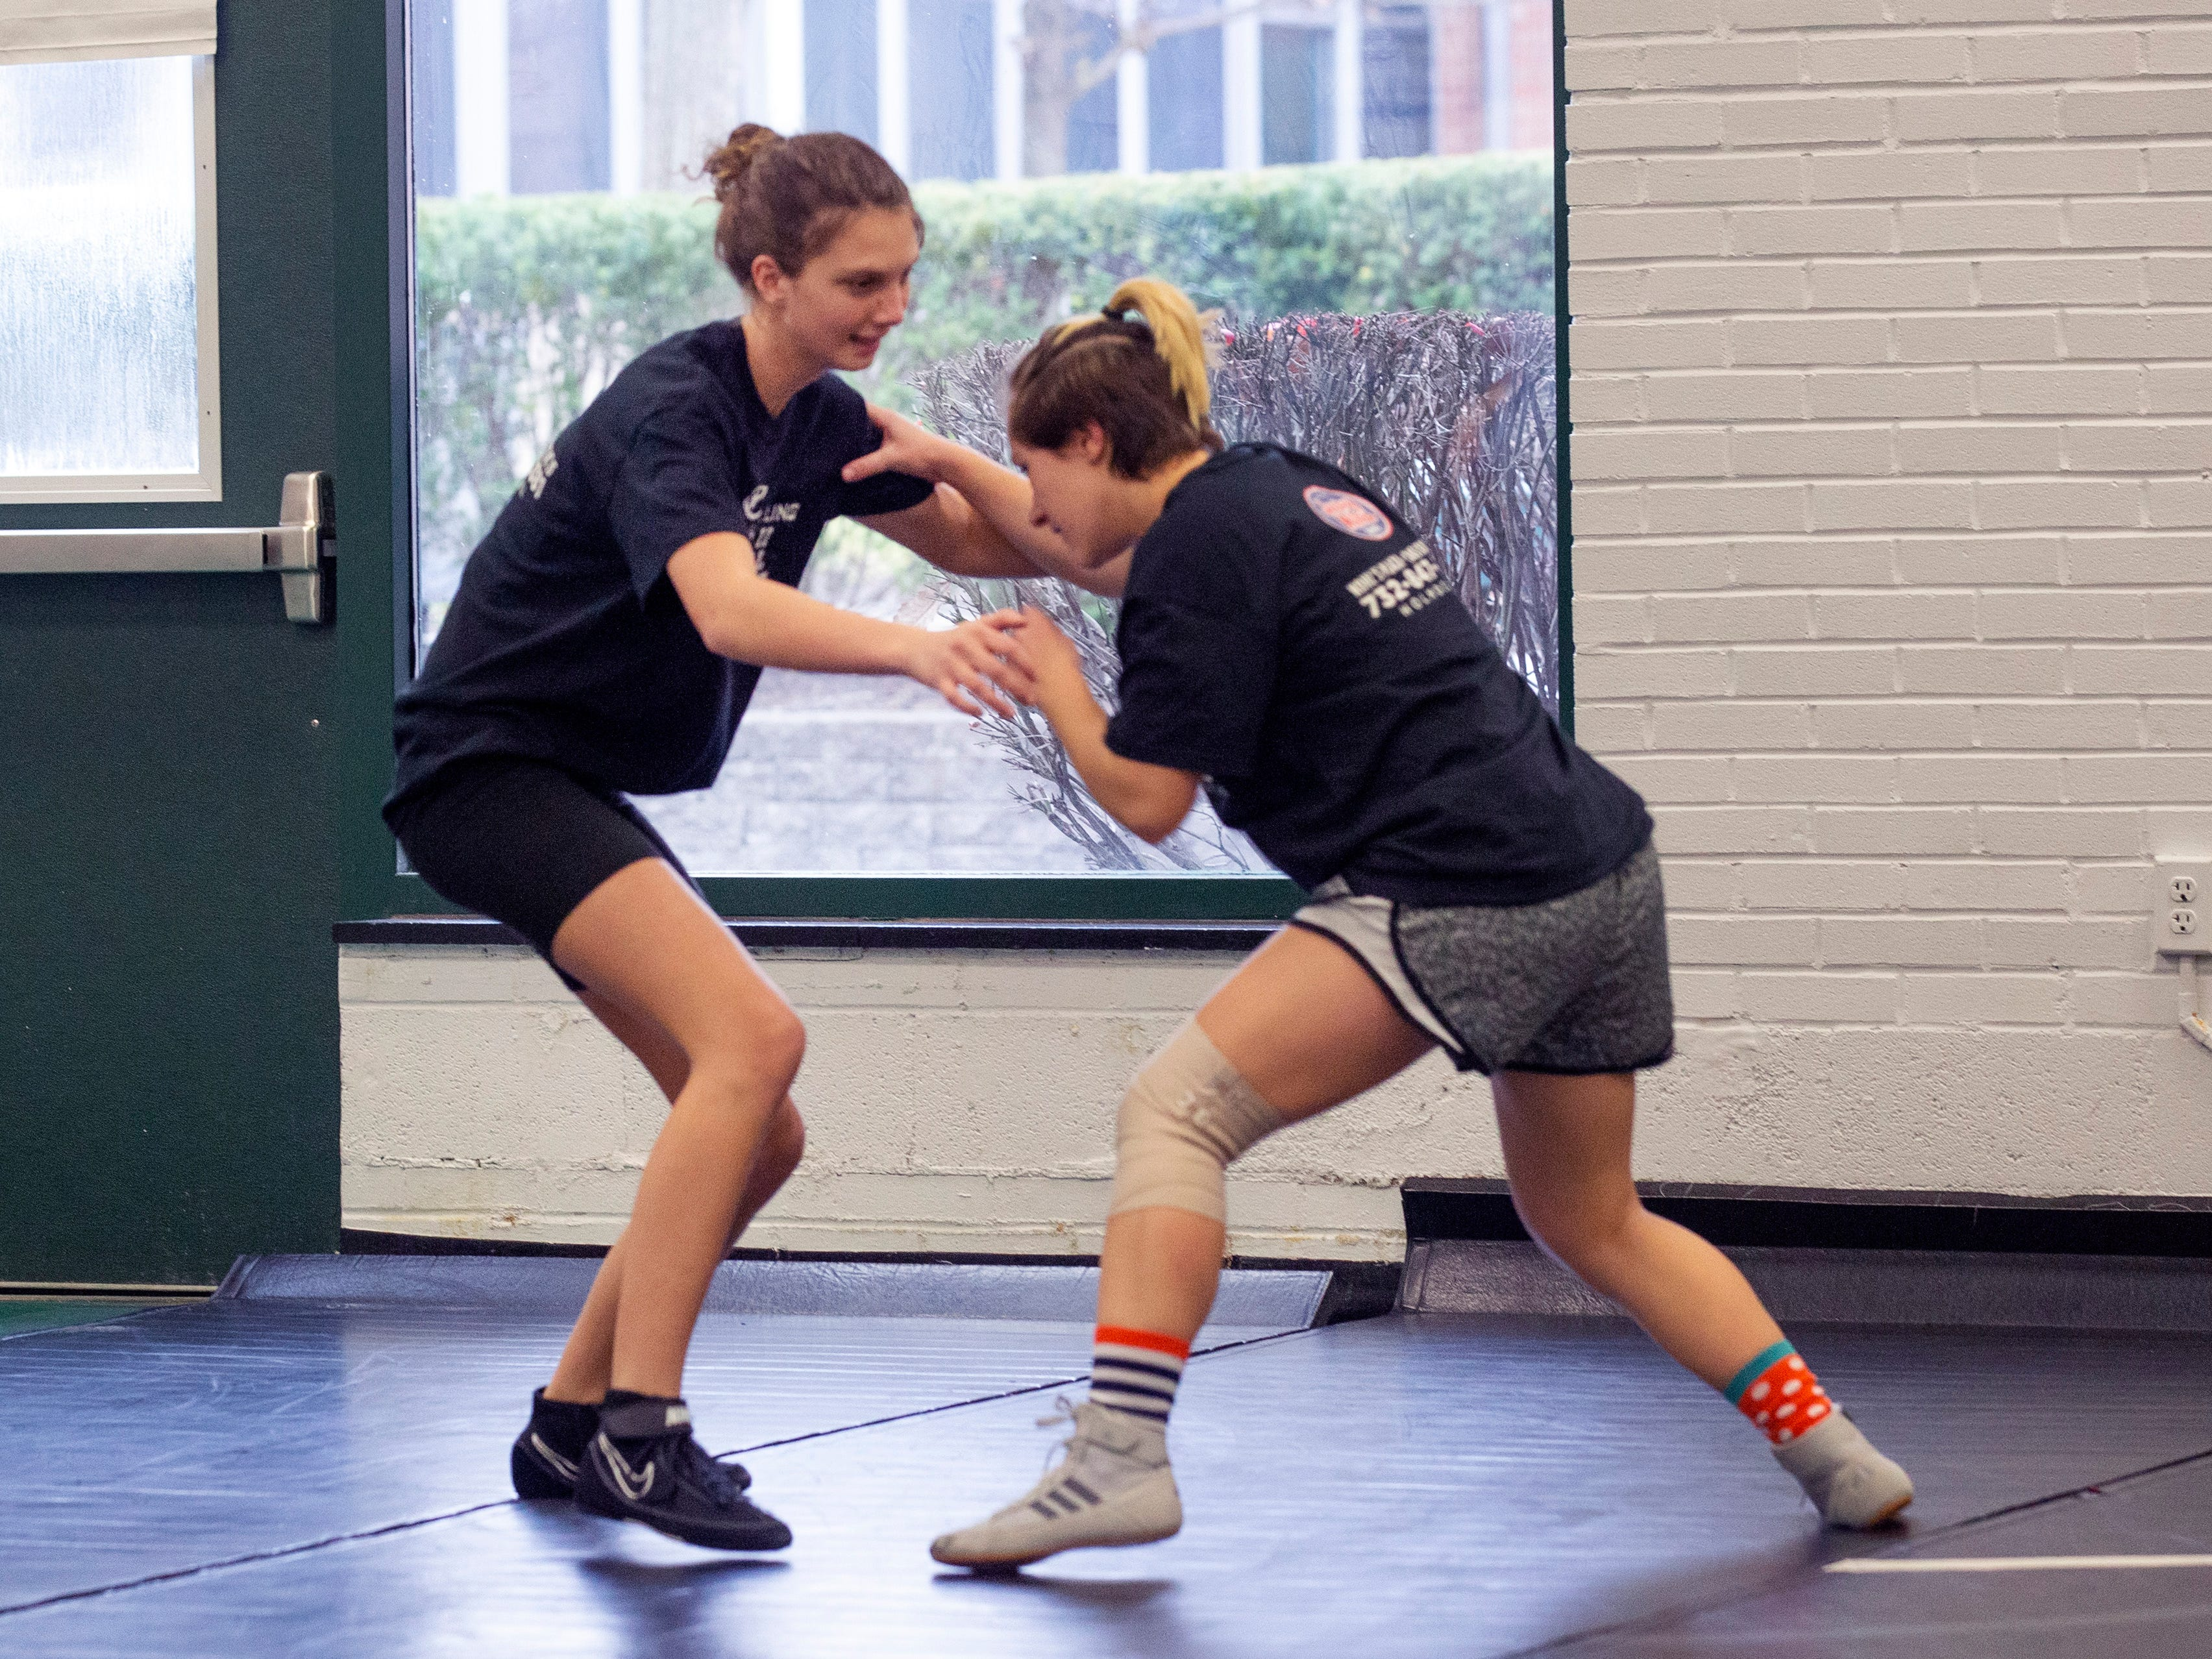 Casandra Auletta, and Christine Gravasheti work on their takedown technique. NJSIAA is offering wrestling for girls this year and they will participate in an all girls tournament at the end of the season. Raritan High School Wrestling is fielding nearly a  full girls team this year. While girls mostly practice separately from the boys, they are in a room next to the boys and frequent coaching sessions happen in the boys room to teach moves.